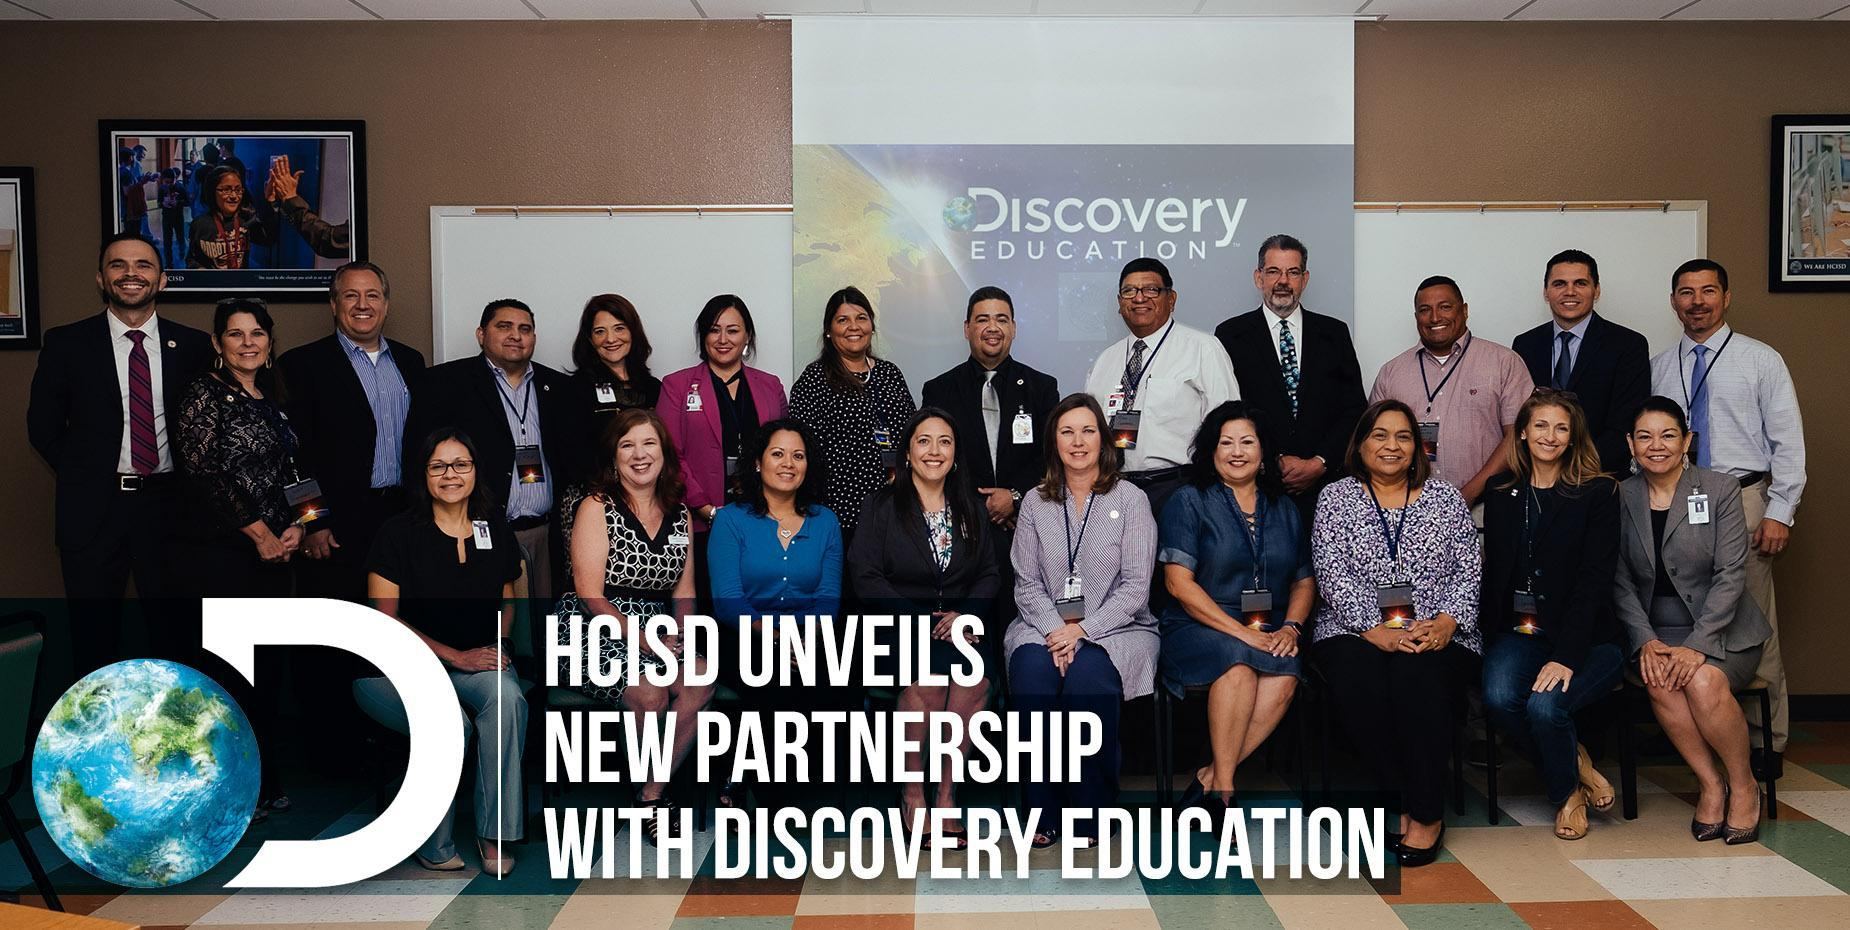 HCISD unveils new partnership with Discovery Education